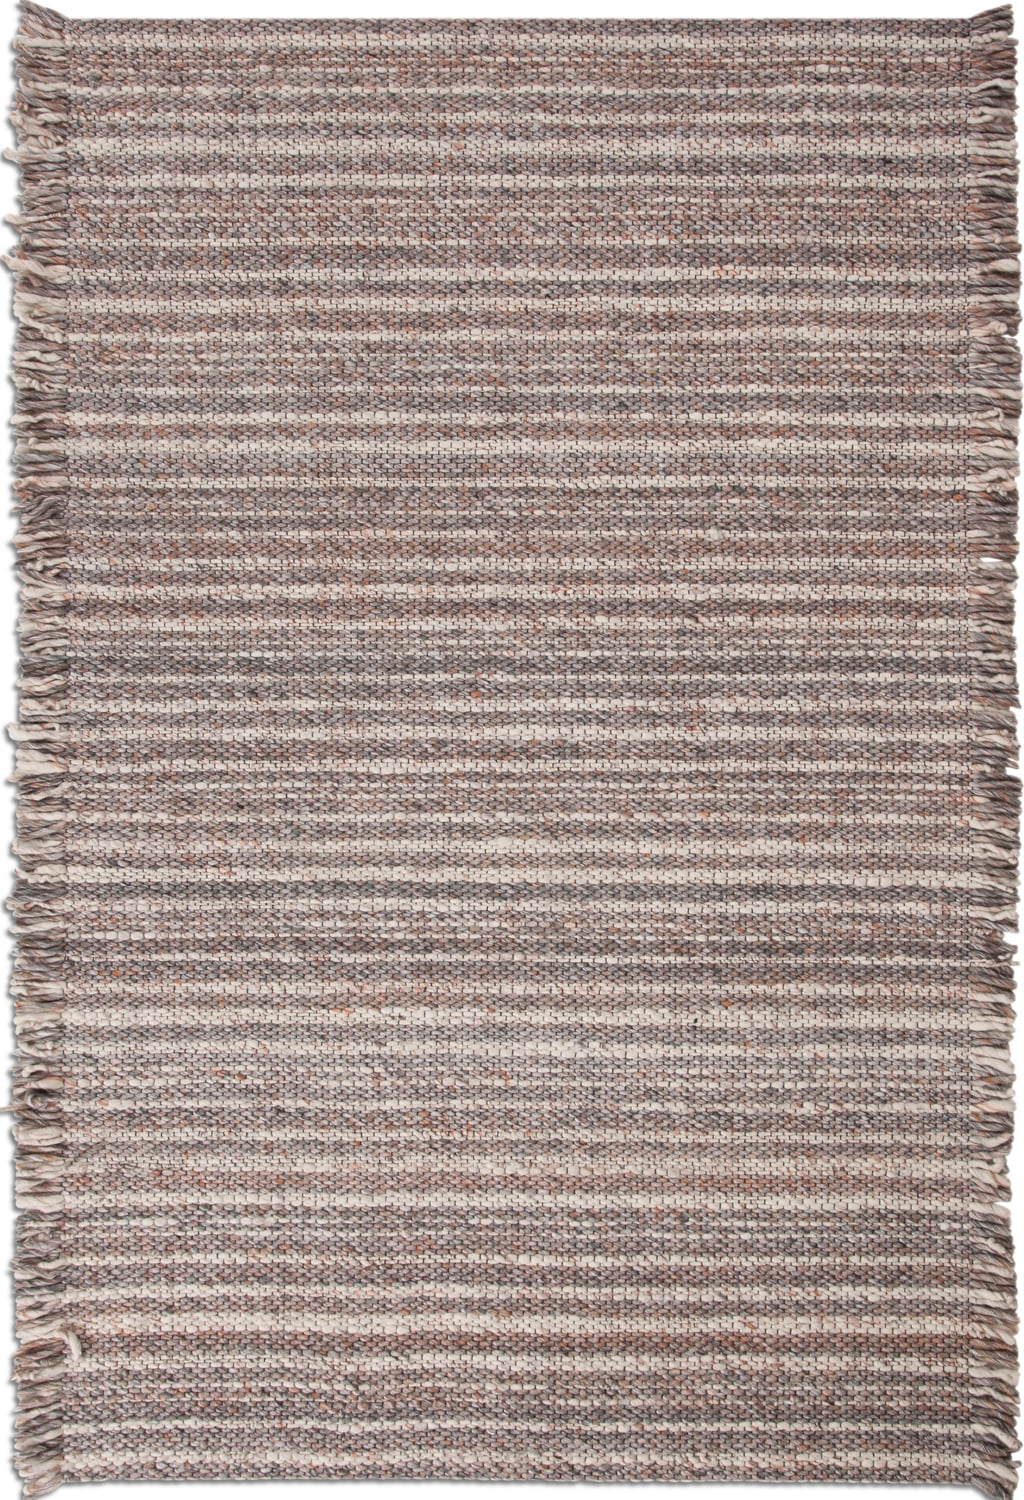 Rugs - Lifestyle Area Rug - Gray/Brown/Ivory